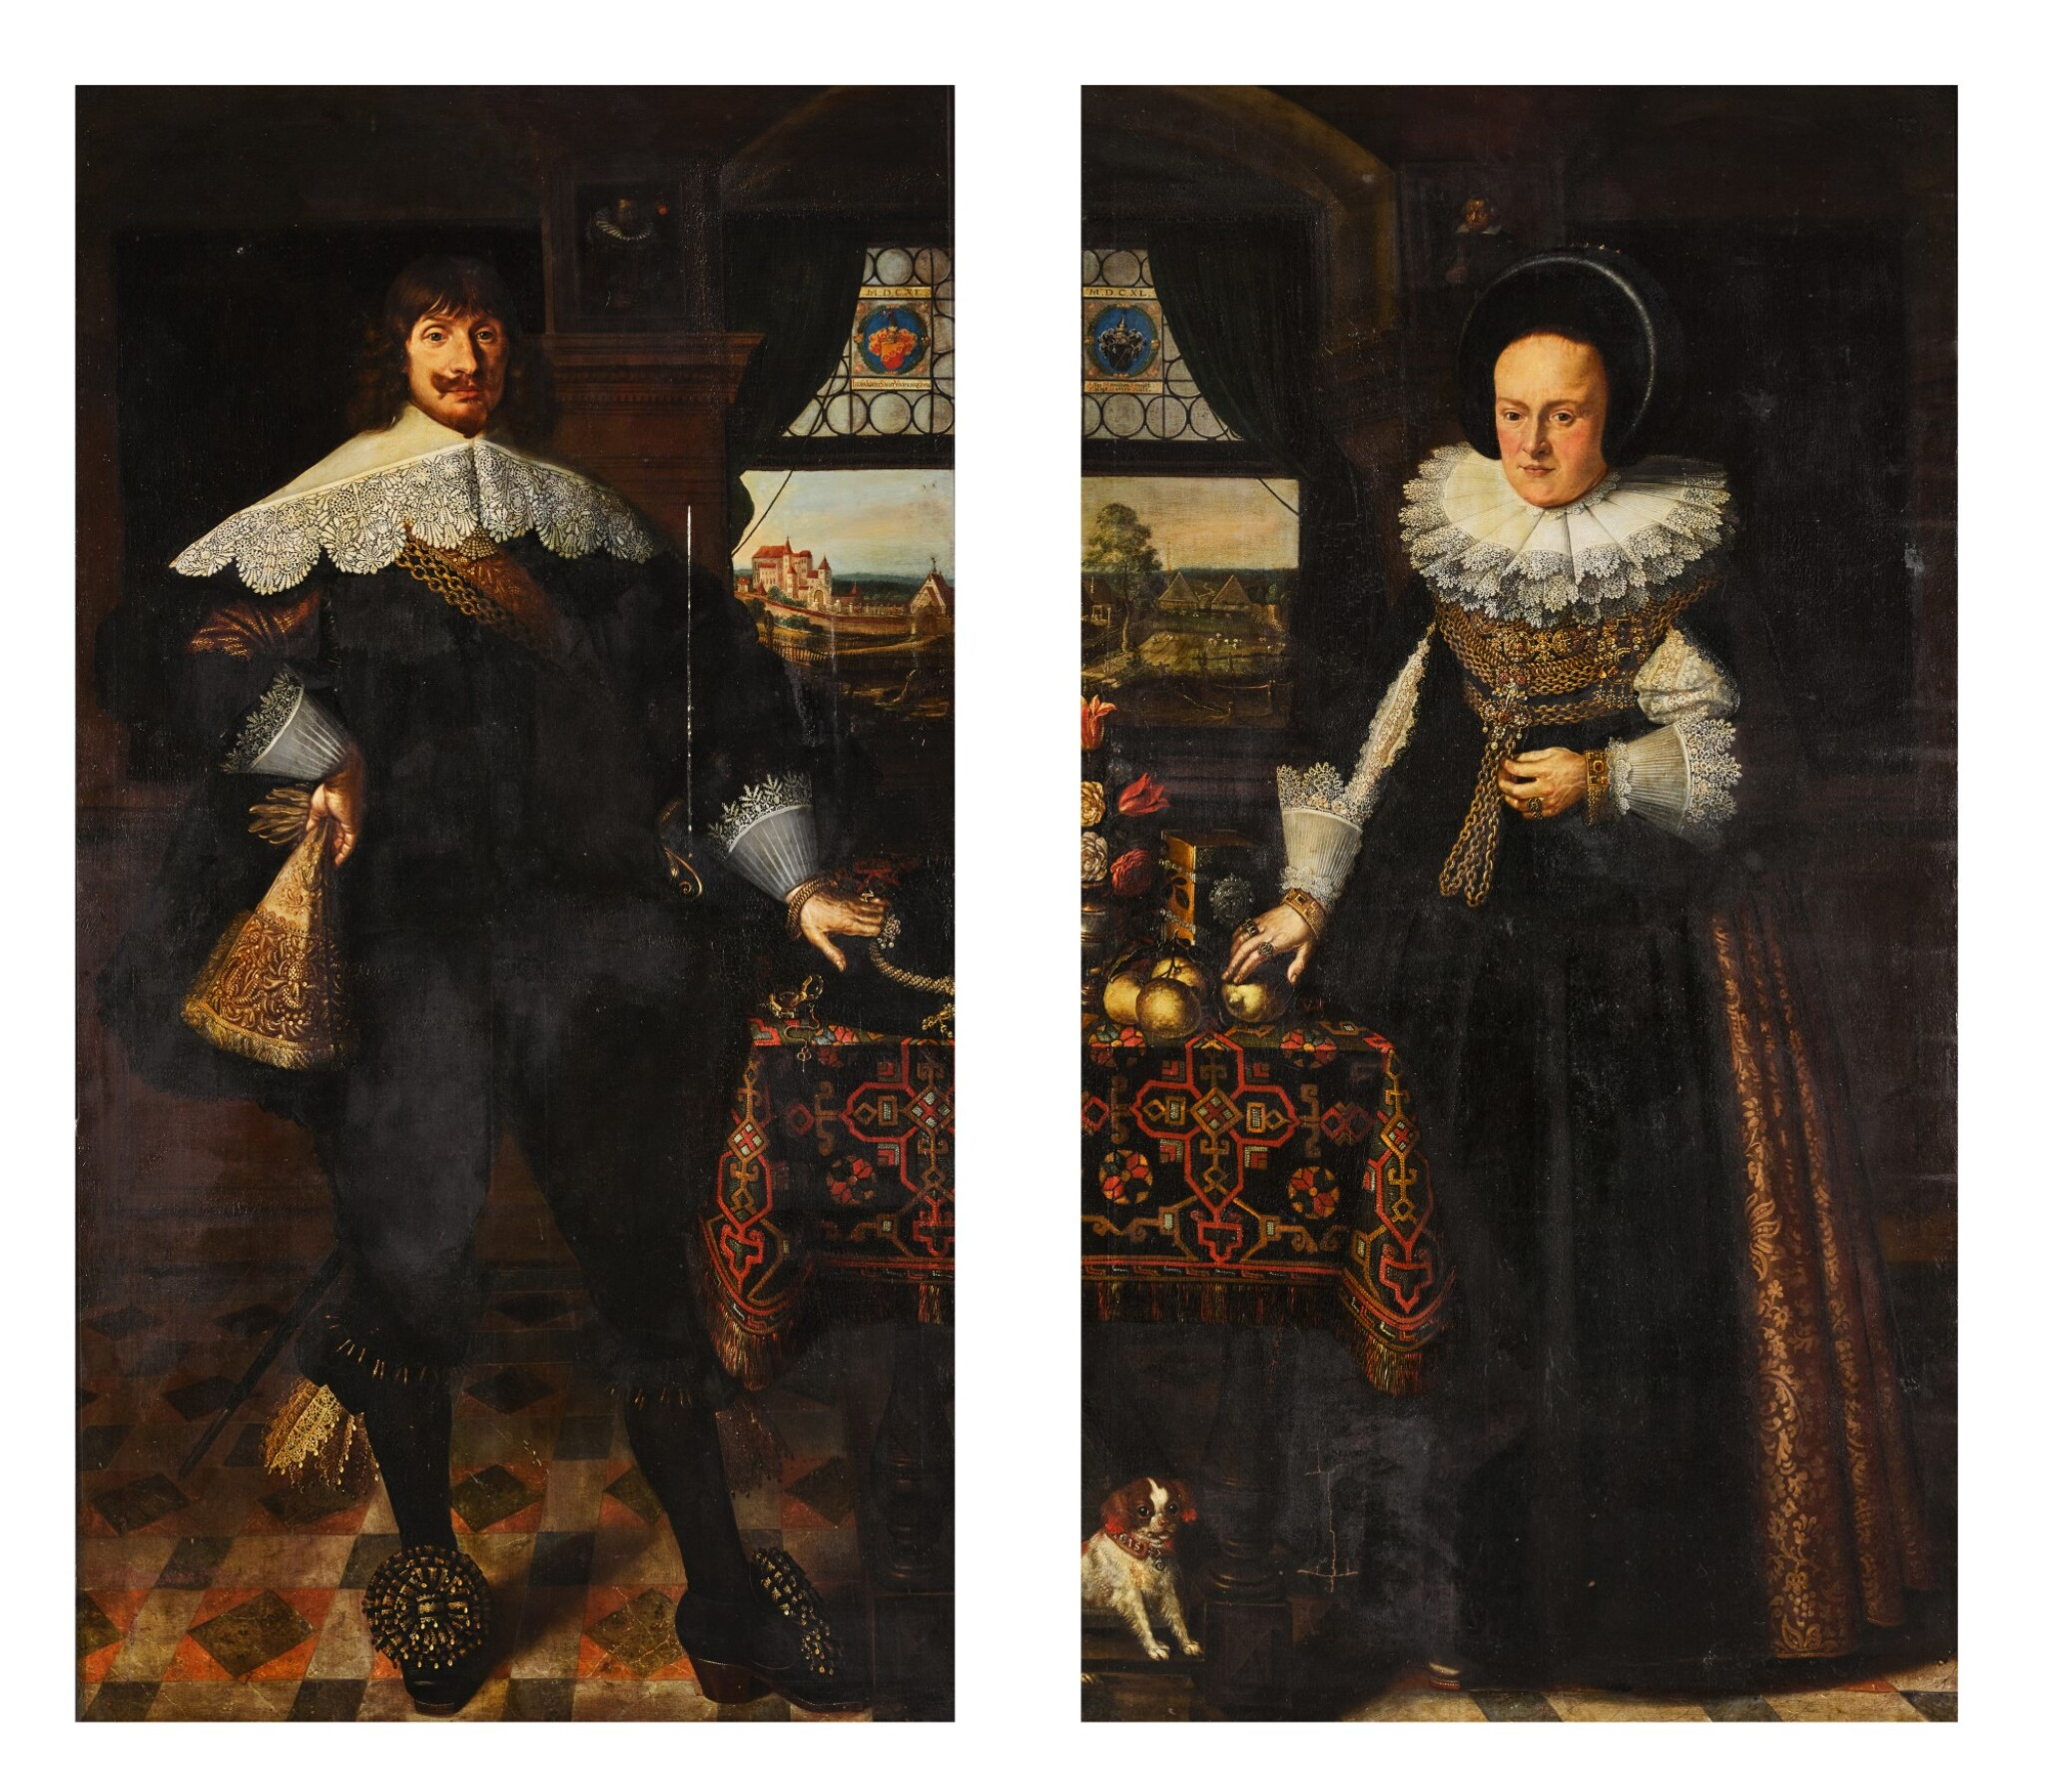 View full screen - View 1 of Lot 139. Portrait of Johann Jobst Schmidtmaier von Schwarzenbruck (1611-47); Portrait of his wife, Anna Maria (1605-64), both standing, full-length, in interiors with landscapes visible through windows beyond.